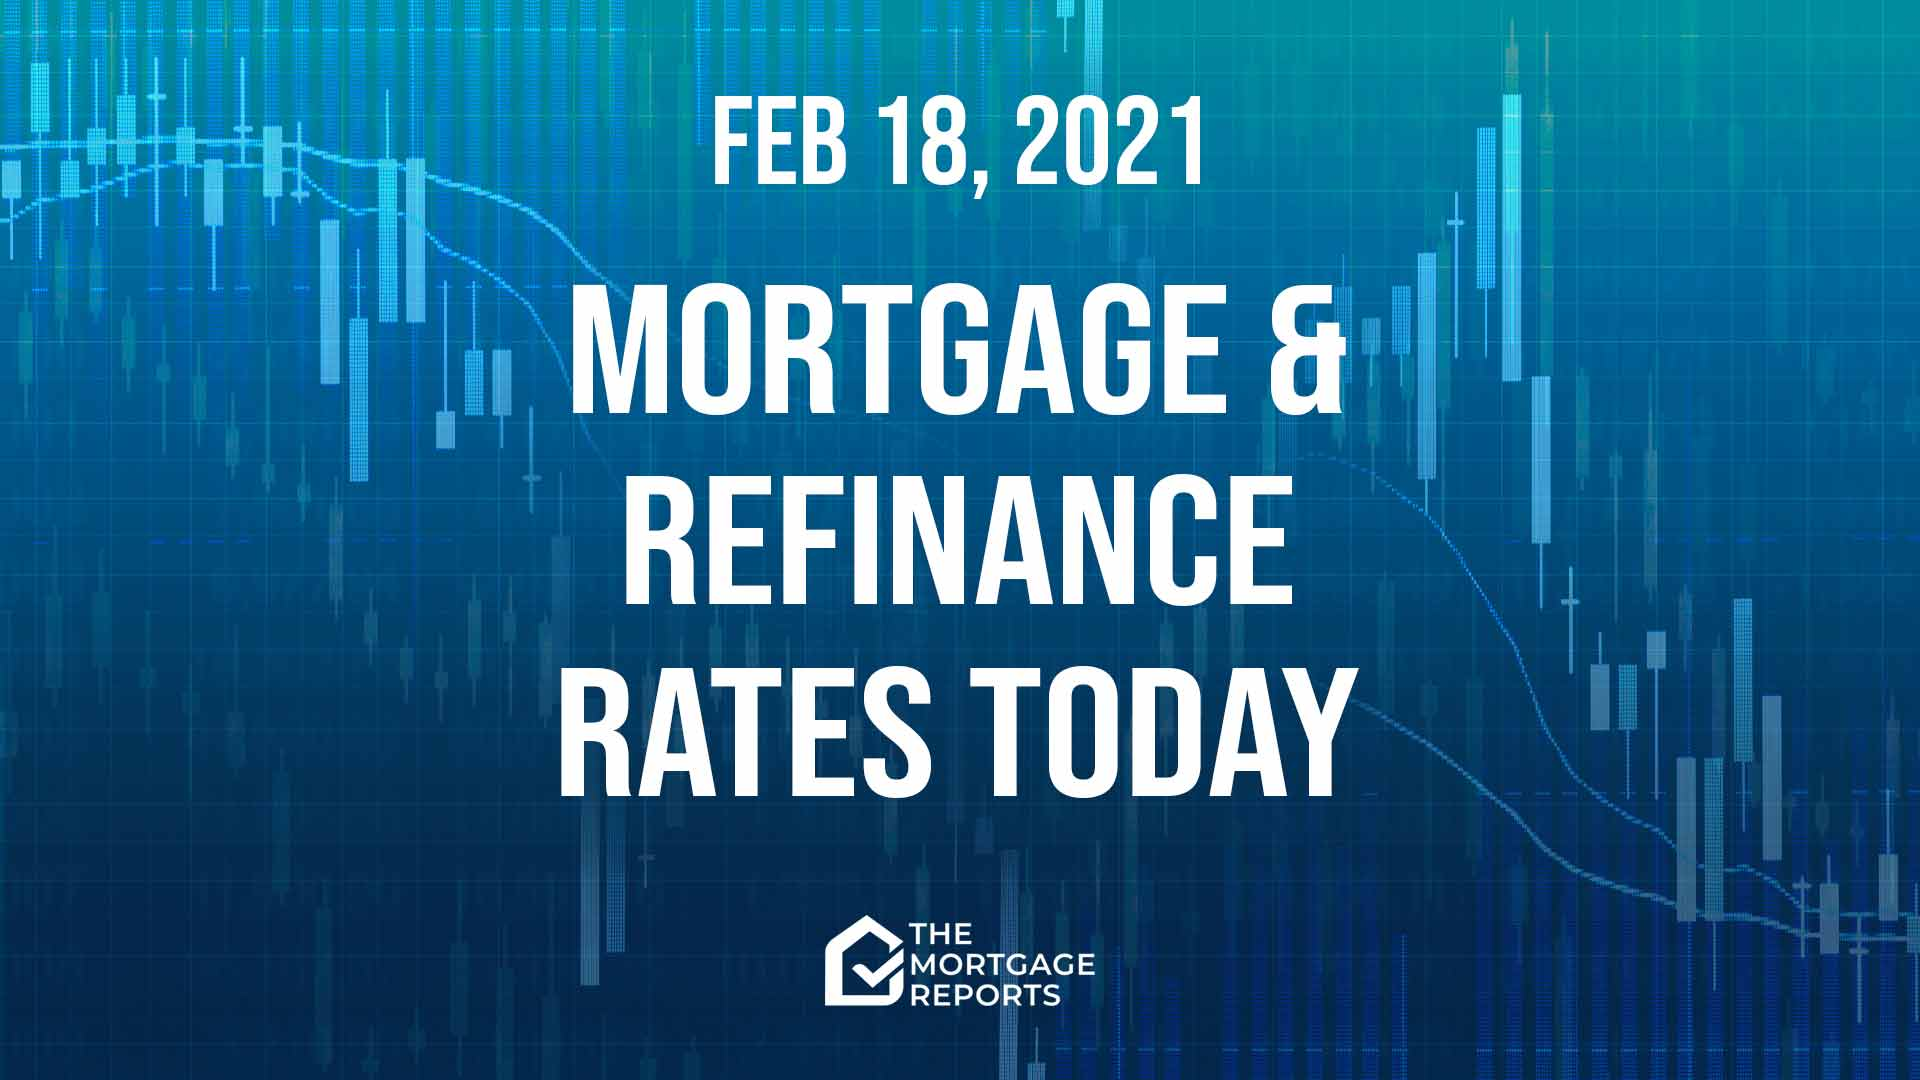 Mortgage and refinance rates today, February 18, 2021